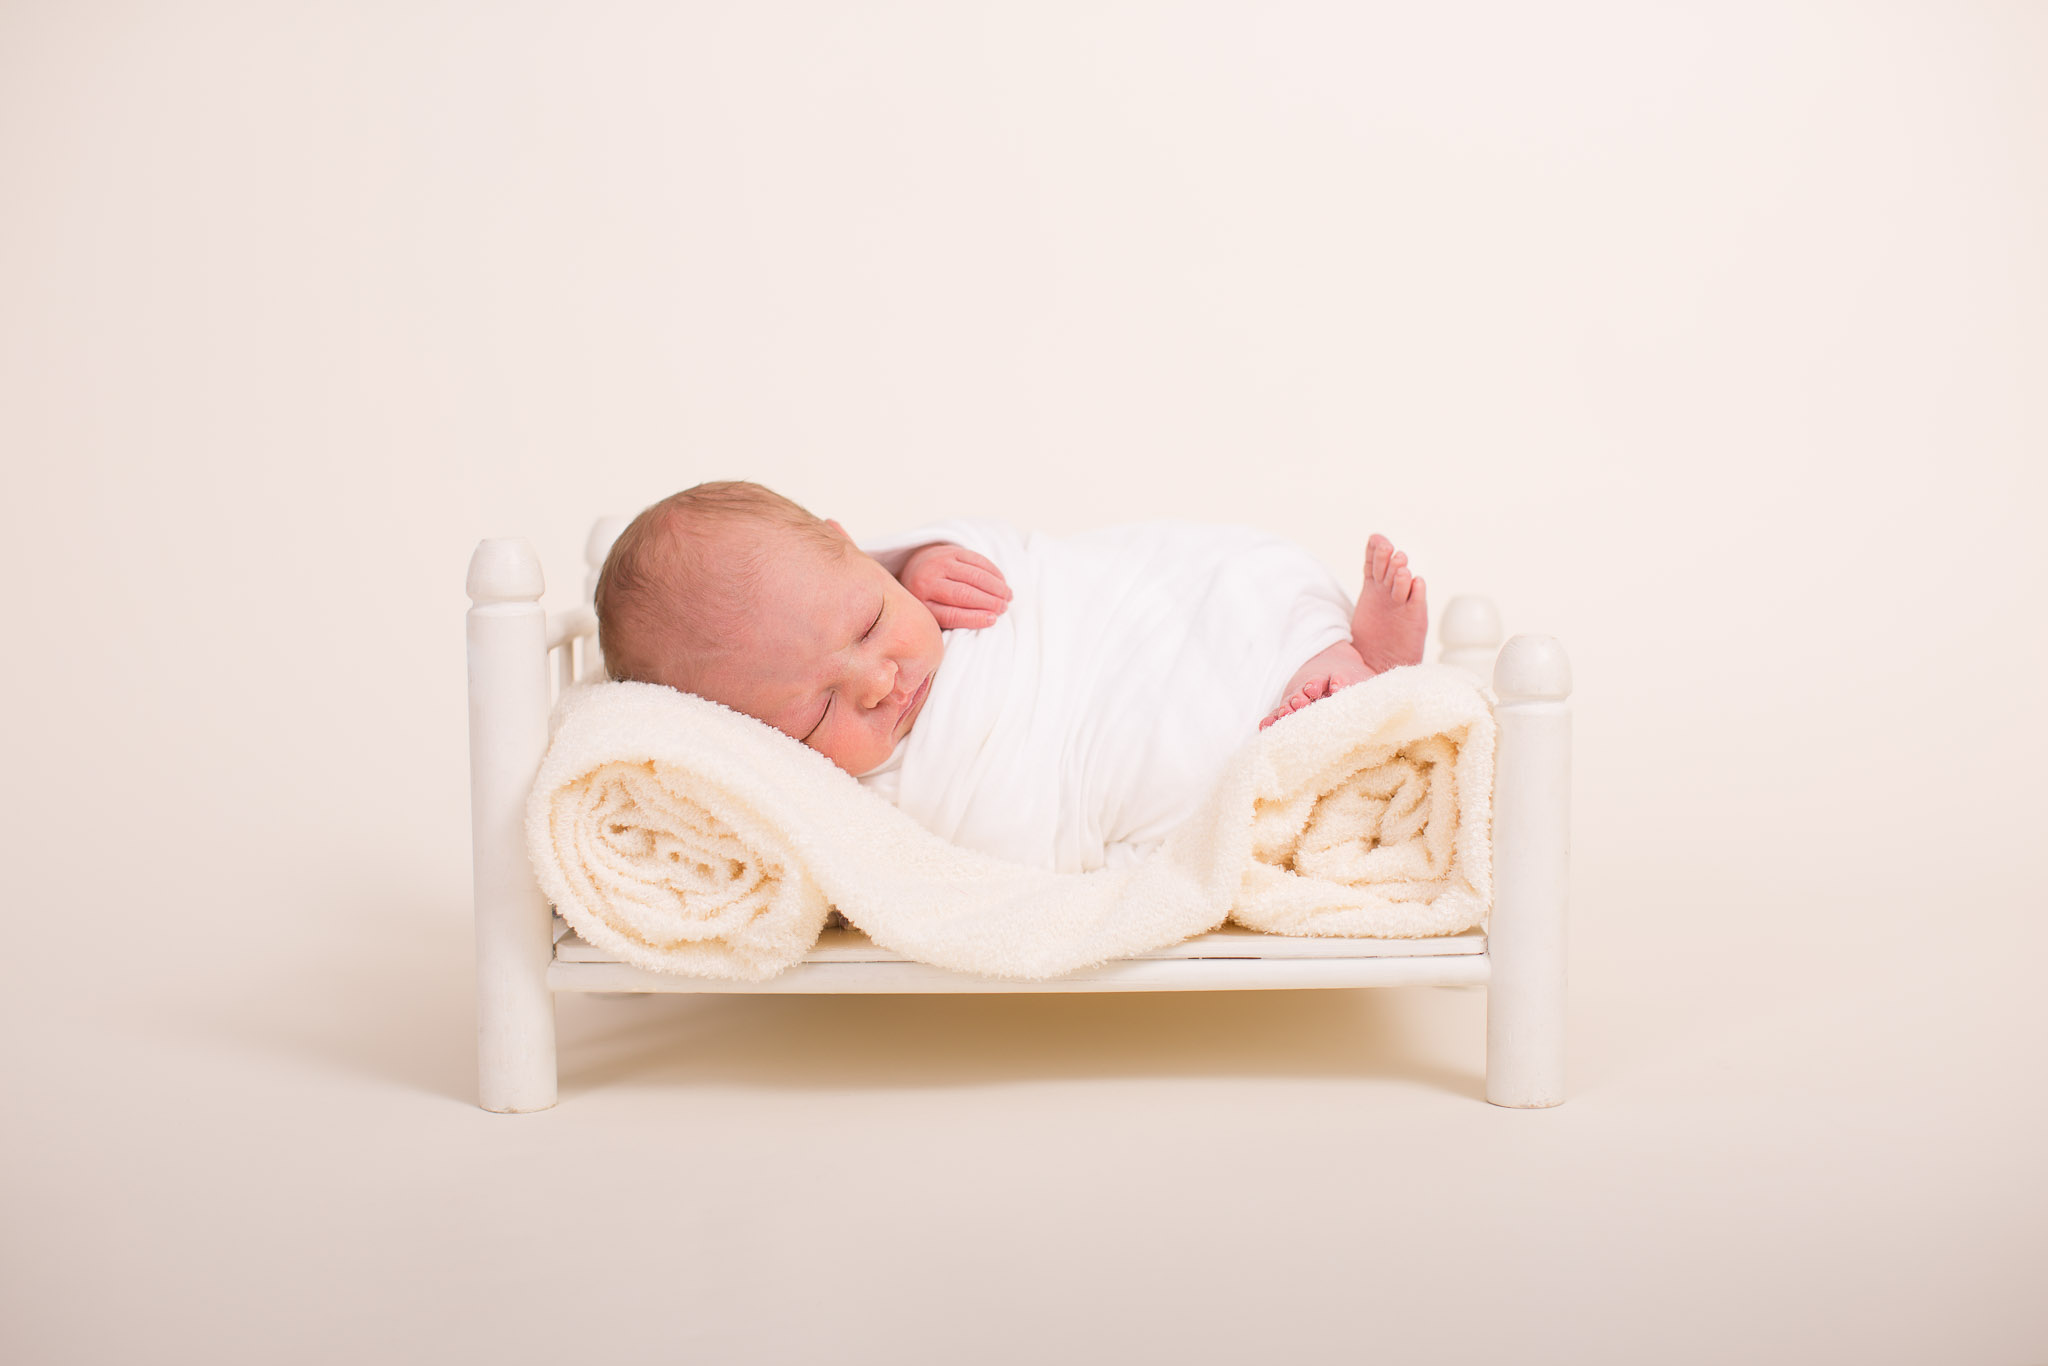 Image of baby asleep on little white prop bed